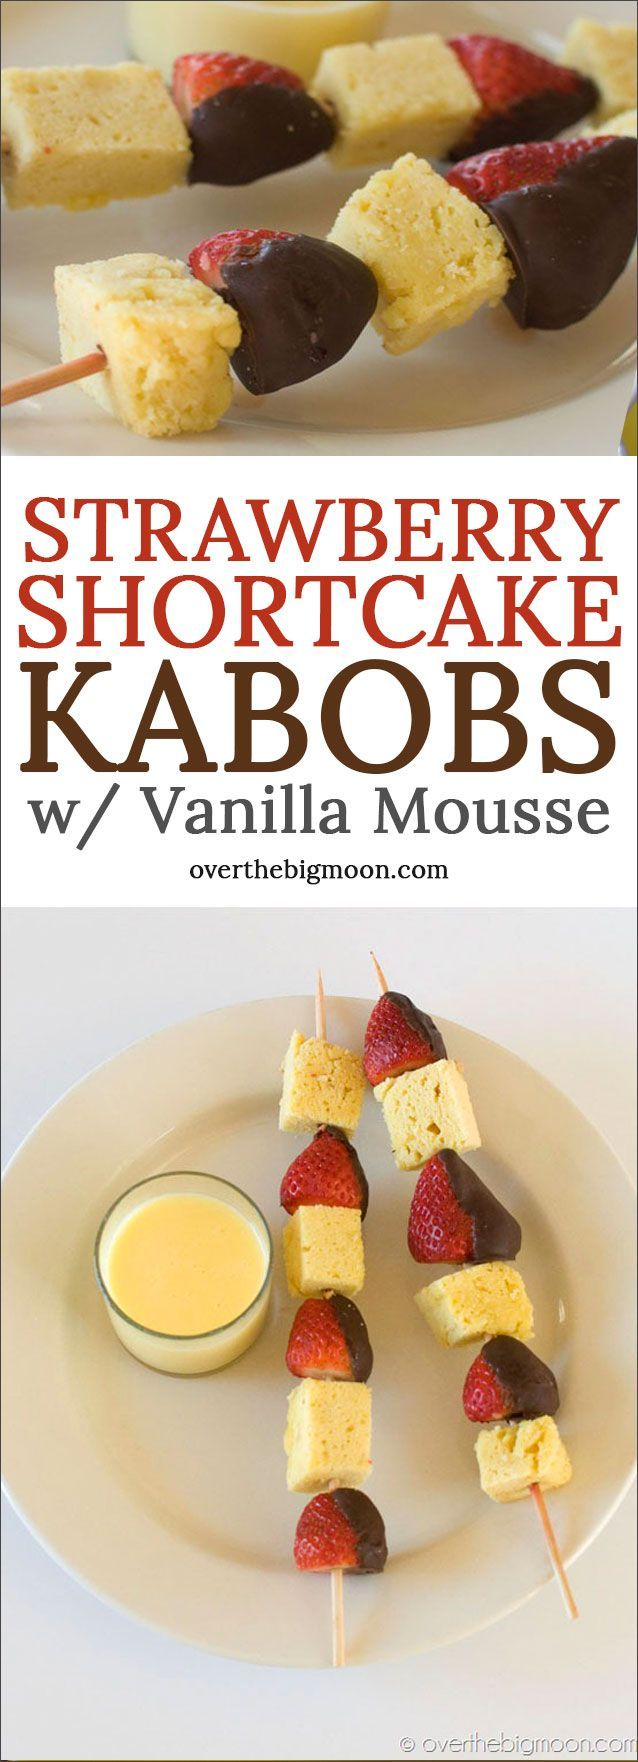 Strawberry Shortcake Kabobs with the most yummy Vanilla Mousse Dipping Sauce! These are perfect for Valentine's Day! Recipe at overthebigmoon.com!